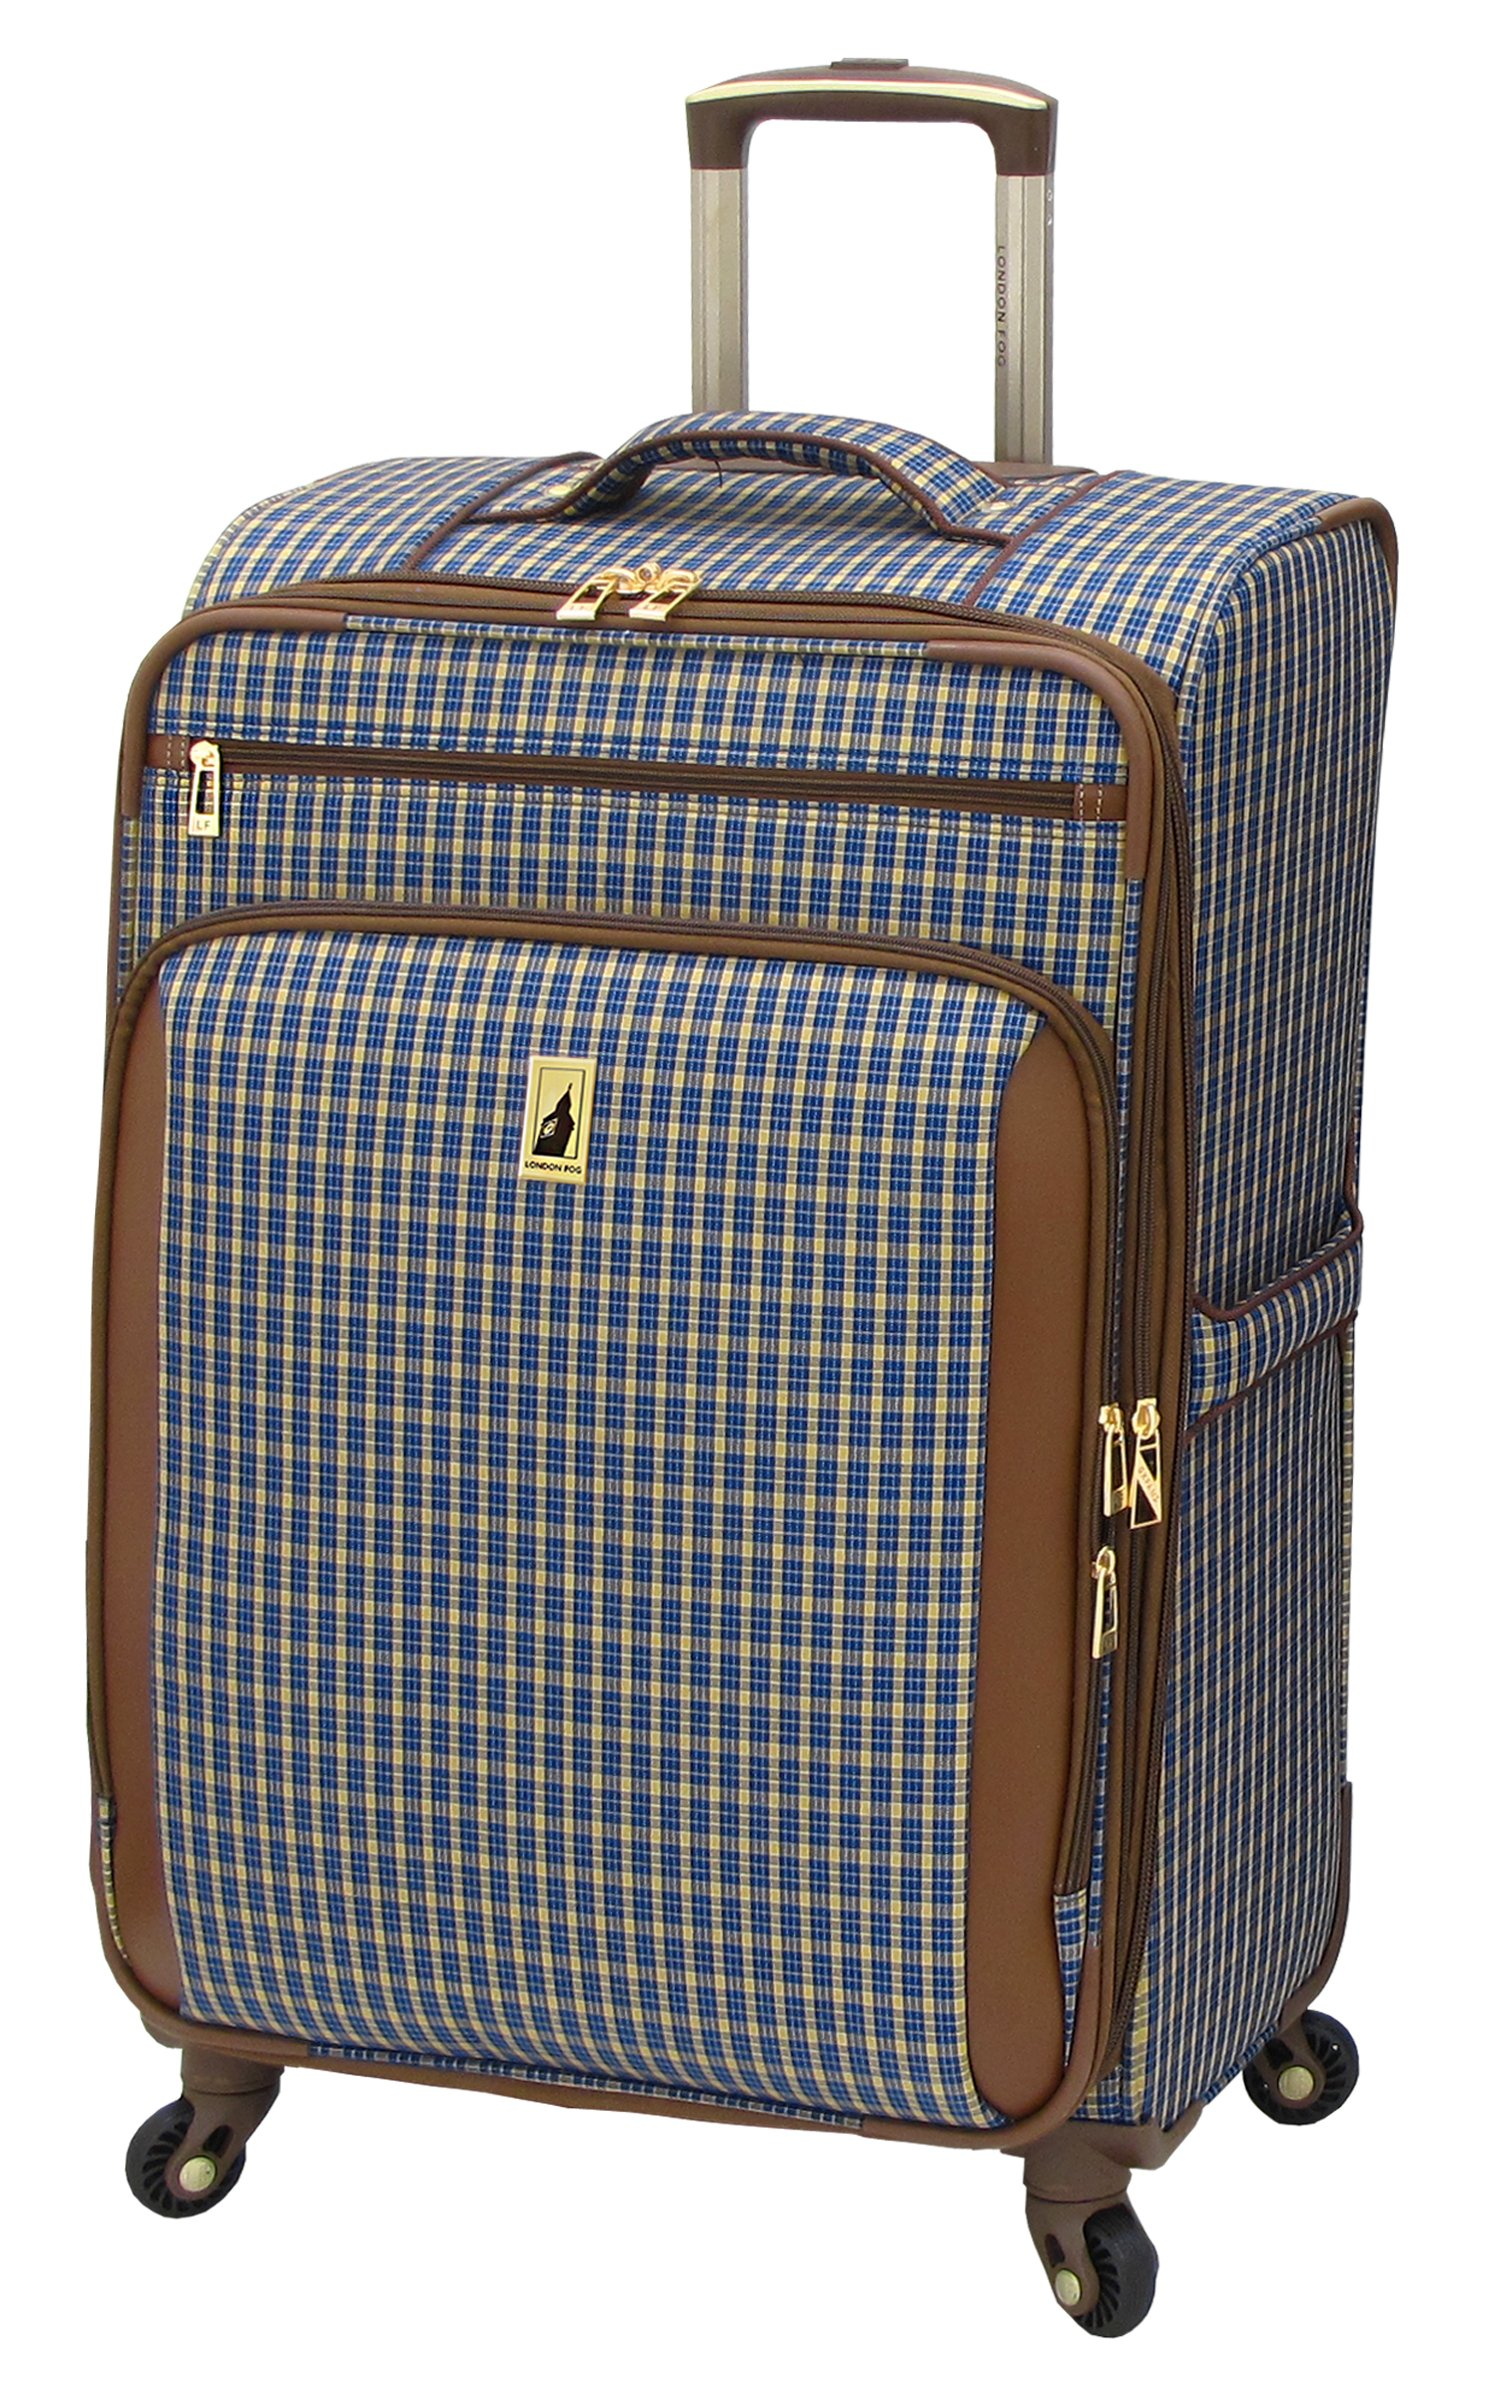 London Fog Kensington 25 Inch Expandable Spinner, Blue Tan Plaid, One Size by London Fog (Image #1)